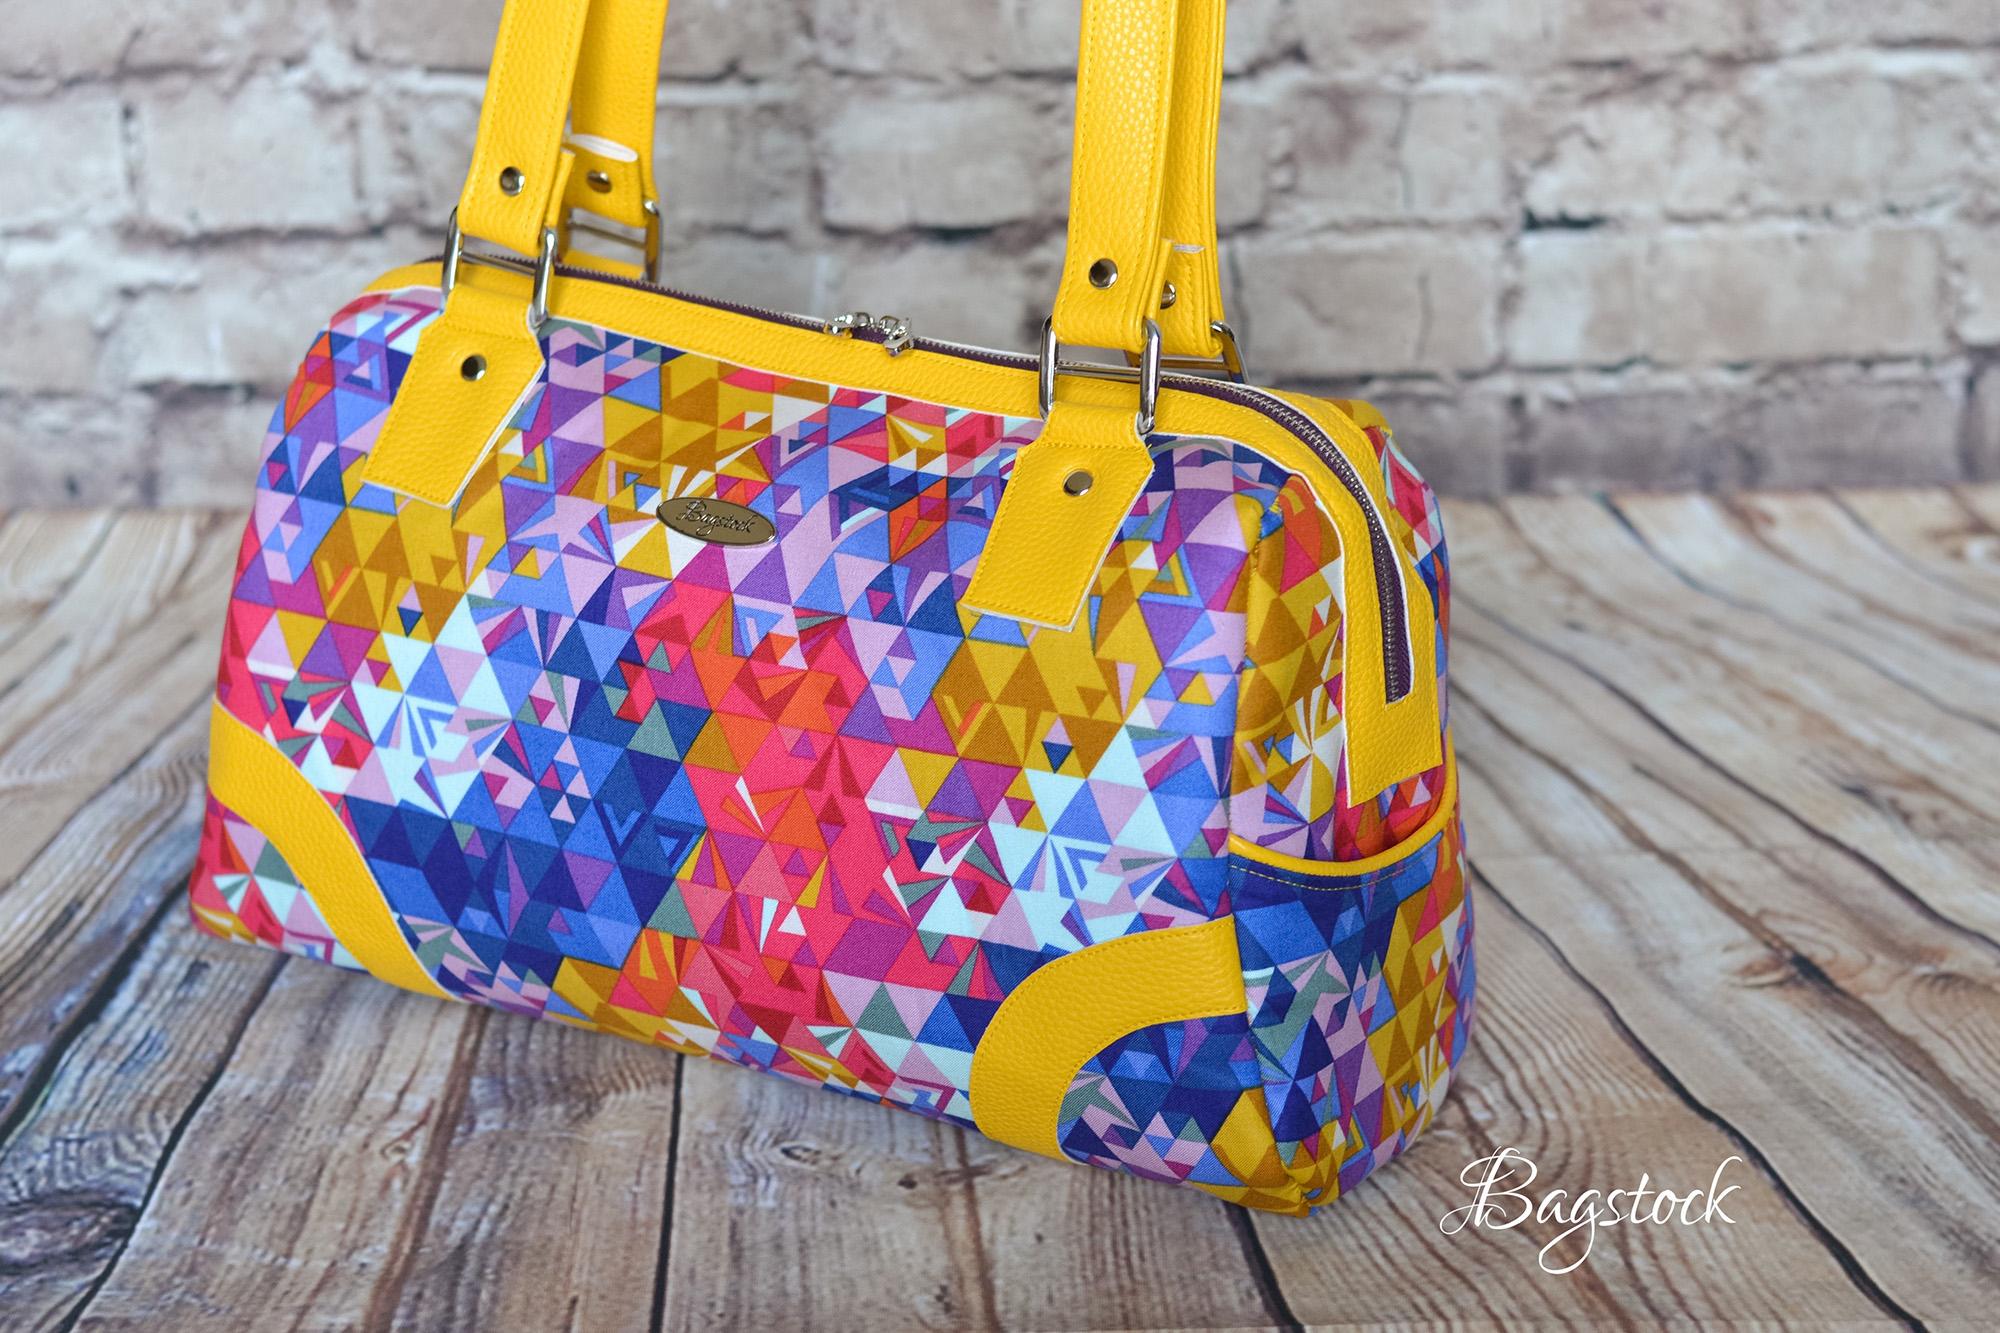 Sew Sweetness Coalition Bag sewing pattern, sewn by Namrata of Bagstock